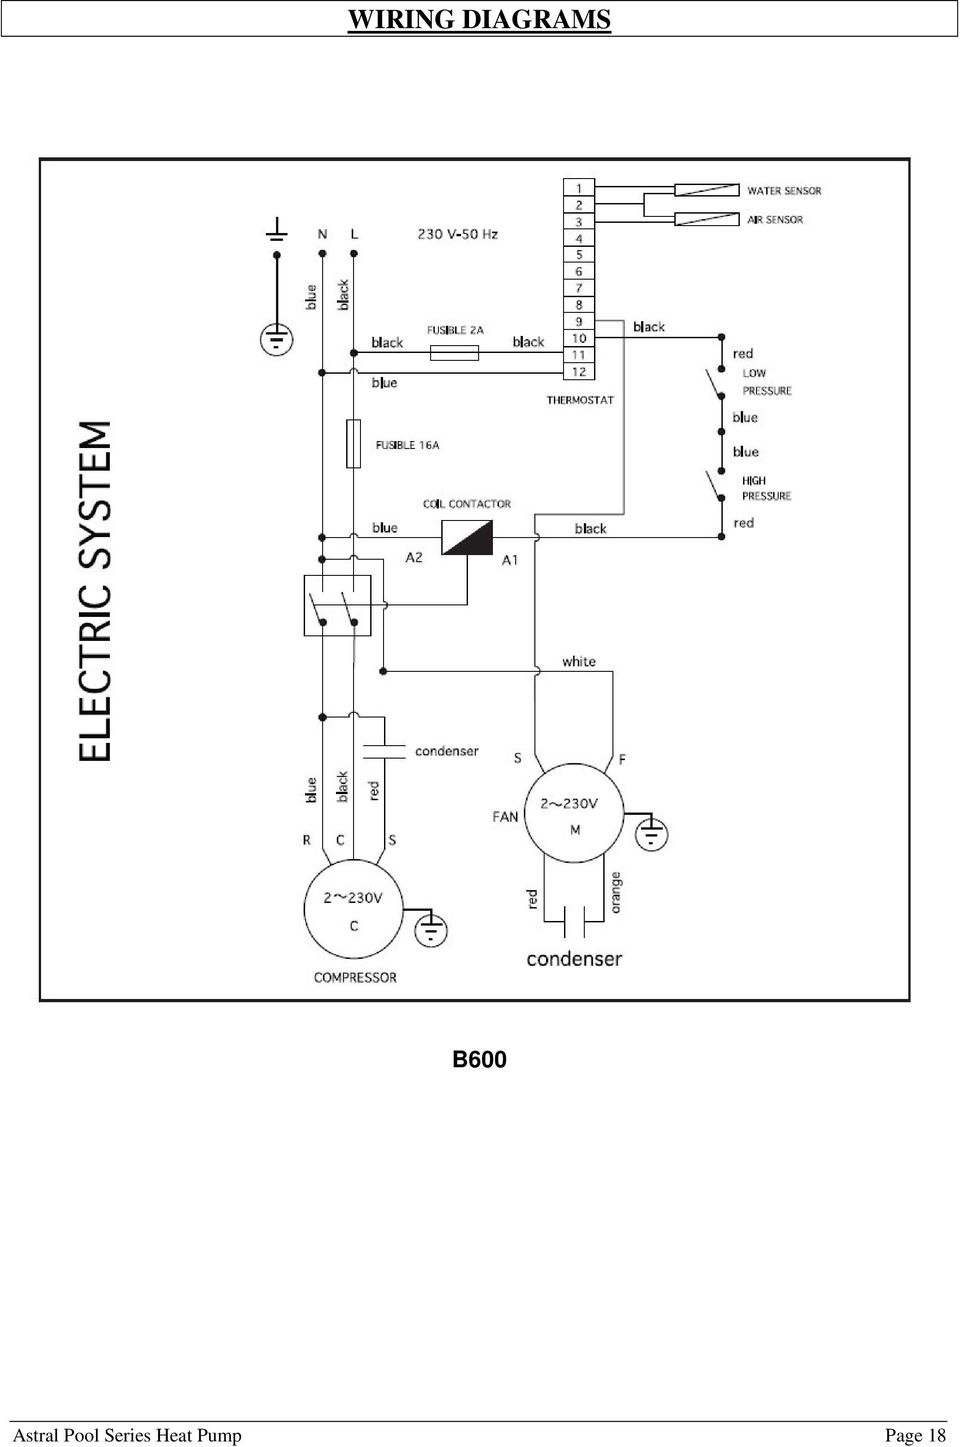 Astral Pool Heat Pump Pdf Wiring Diagram For 230 Volt Circuit 19 Warranty Covers Your And Spa Heater With A Limited Against Defective Materials Workmanship From The Date Of Purchase Plus